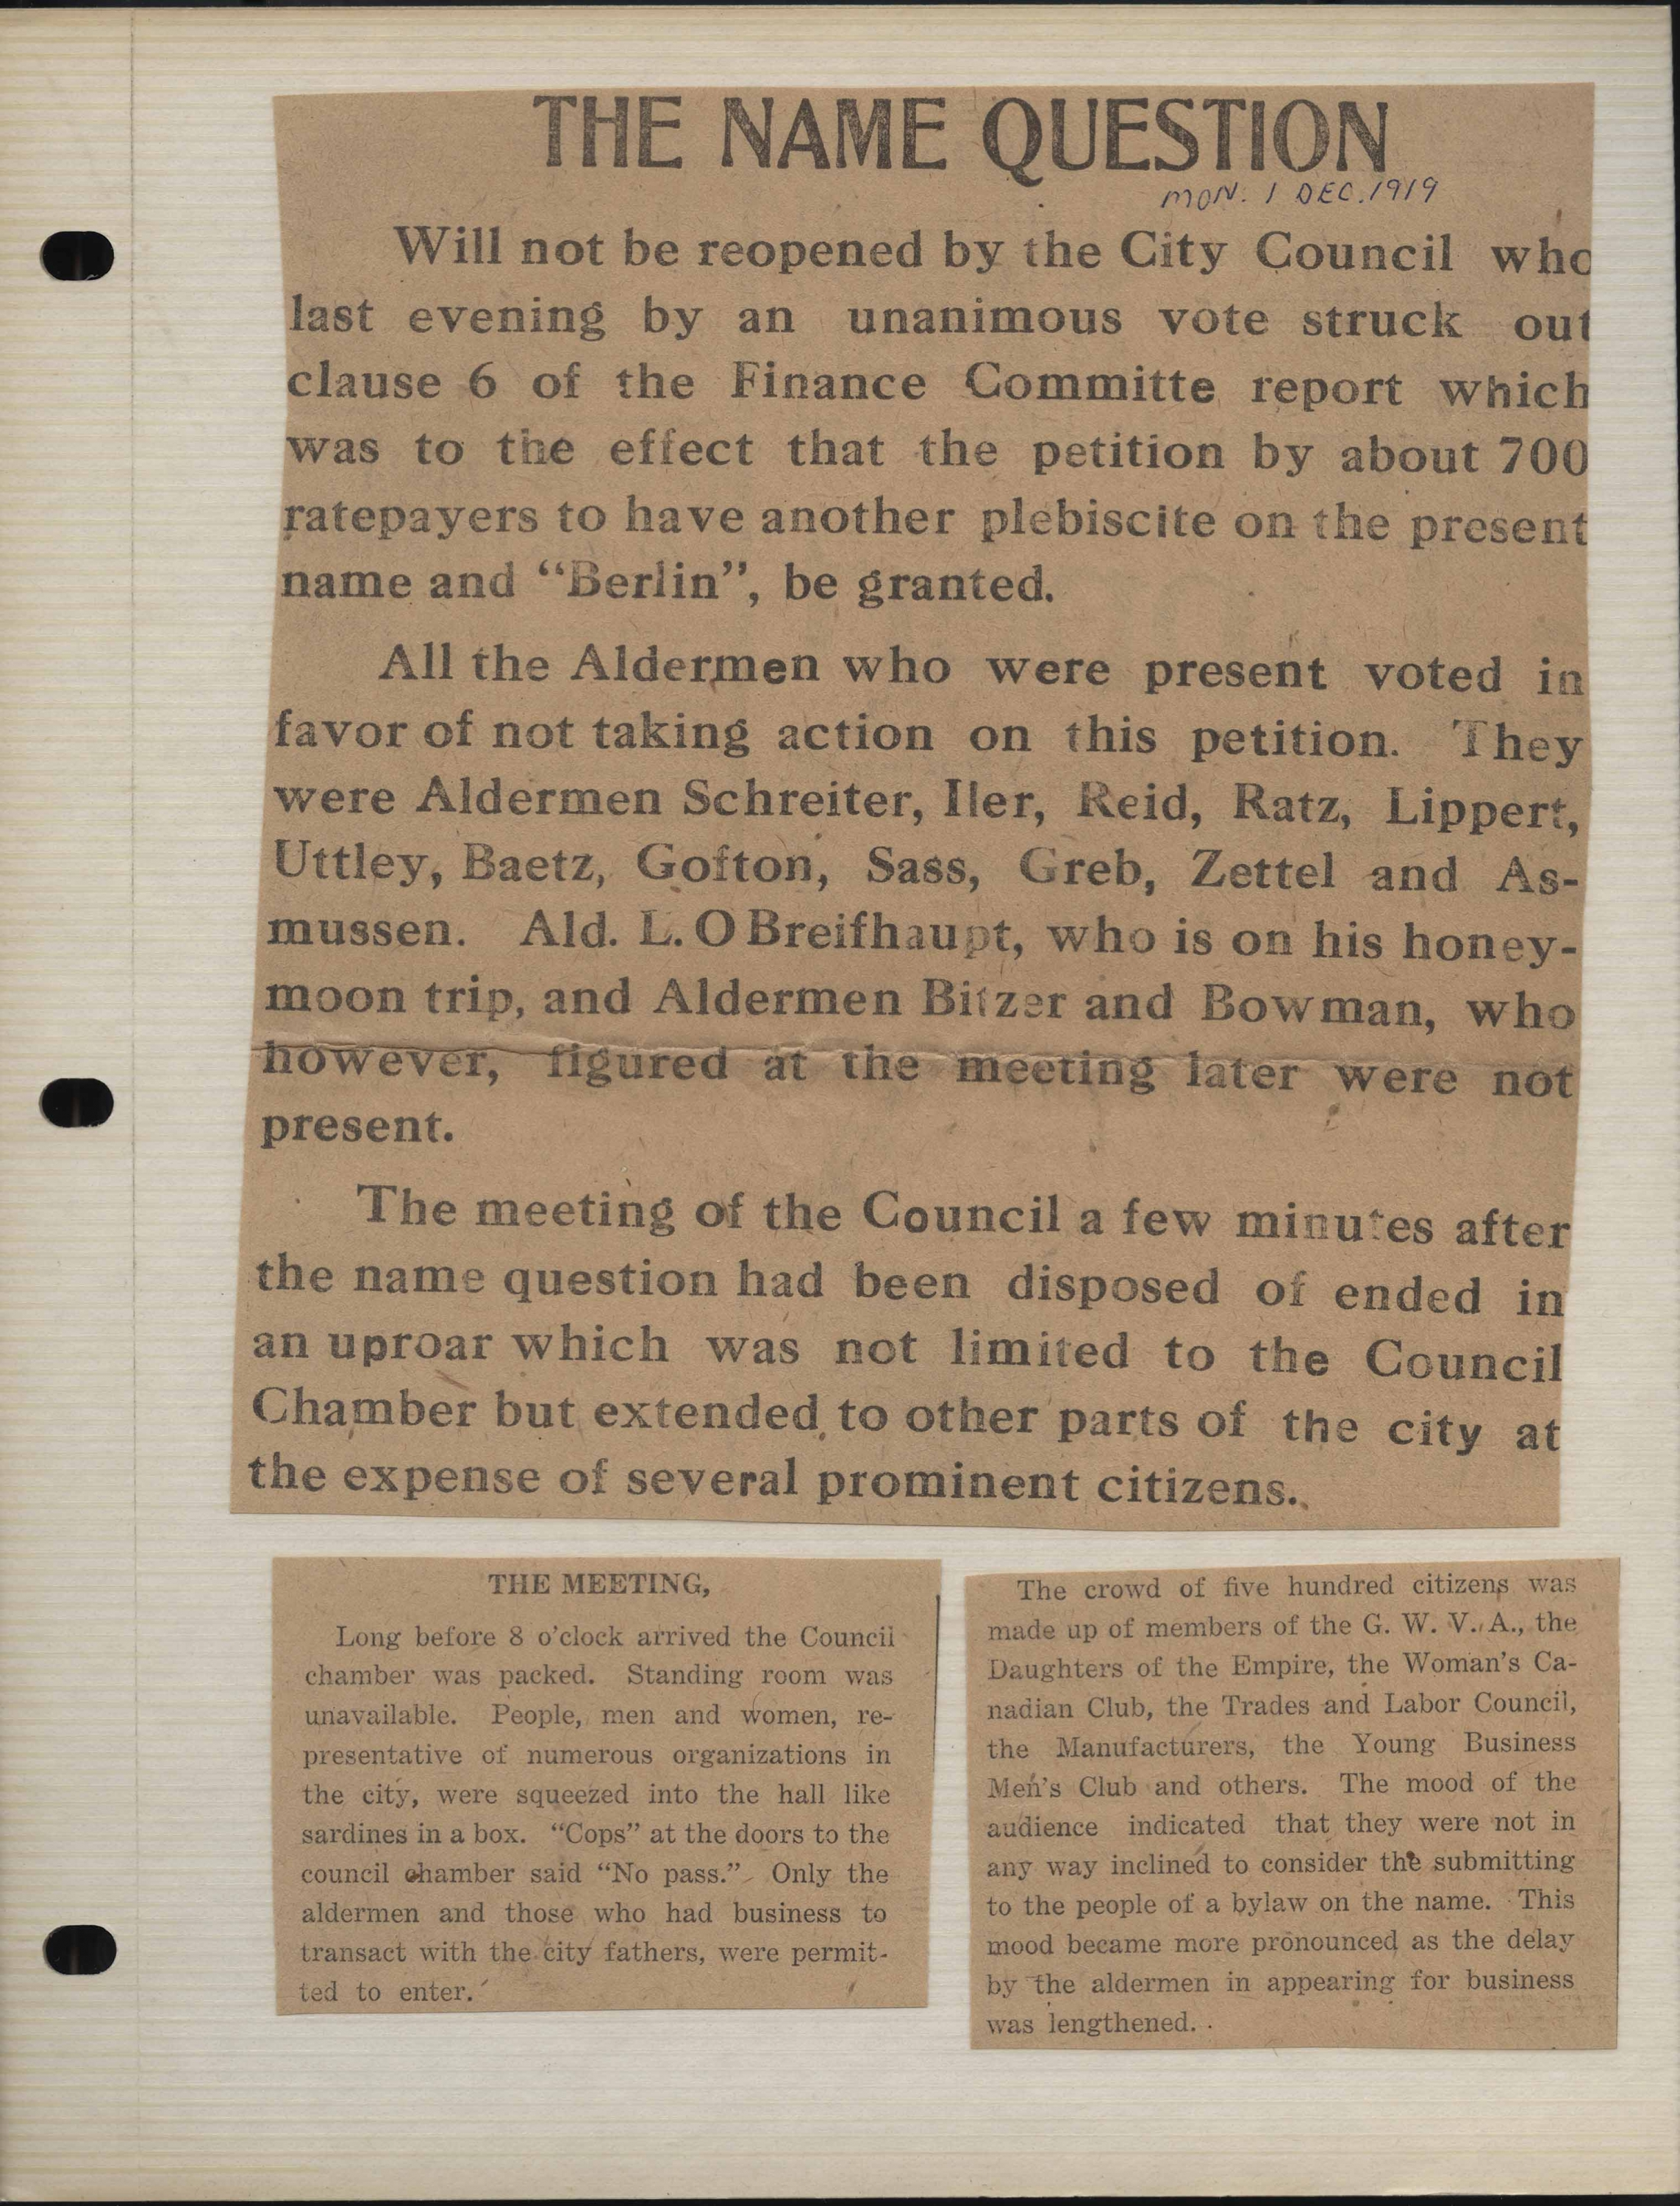 How to scrapbook with newspaper articles -  The Name Question Newspaper Article